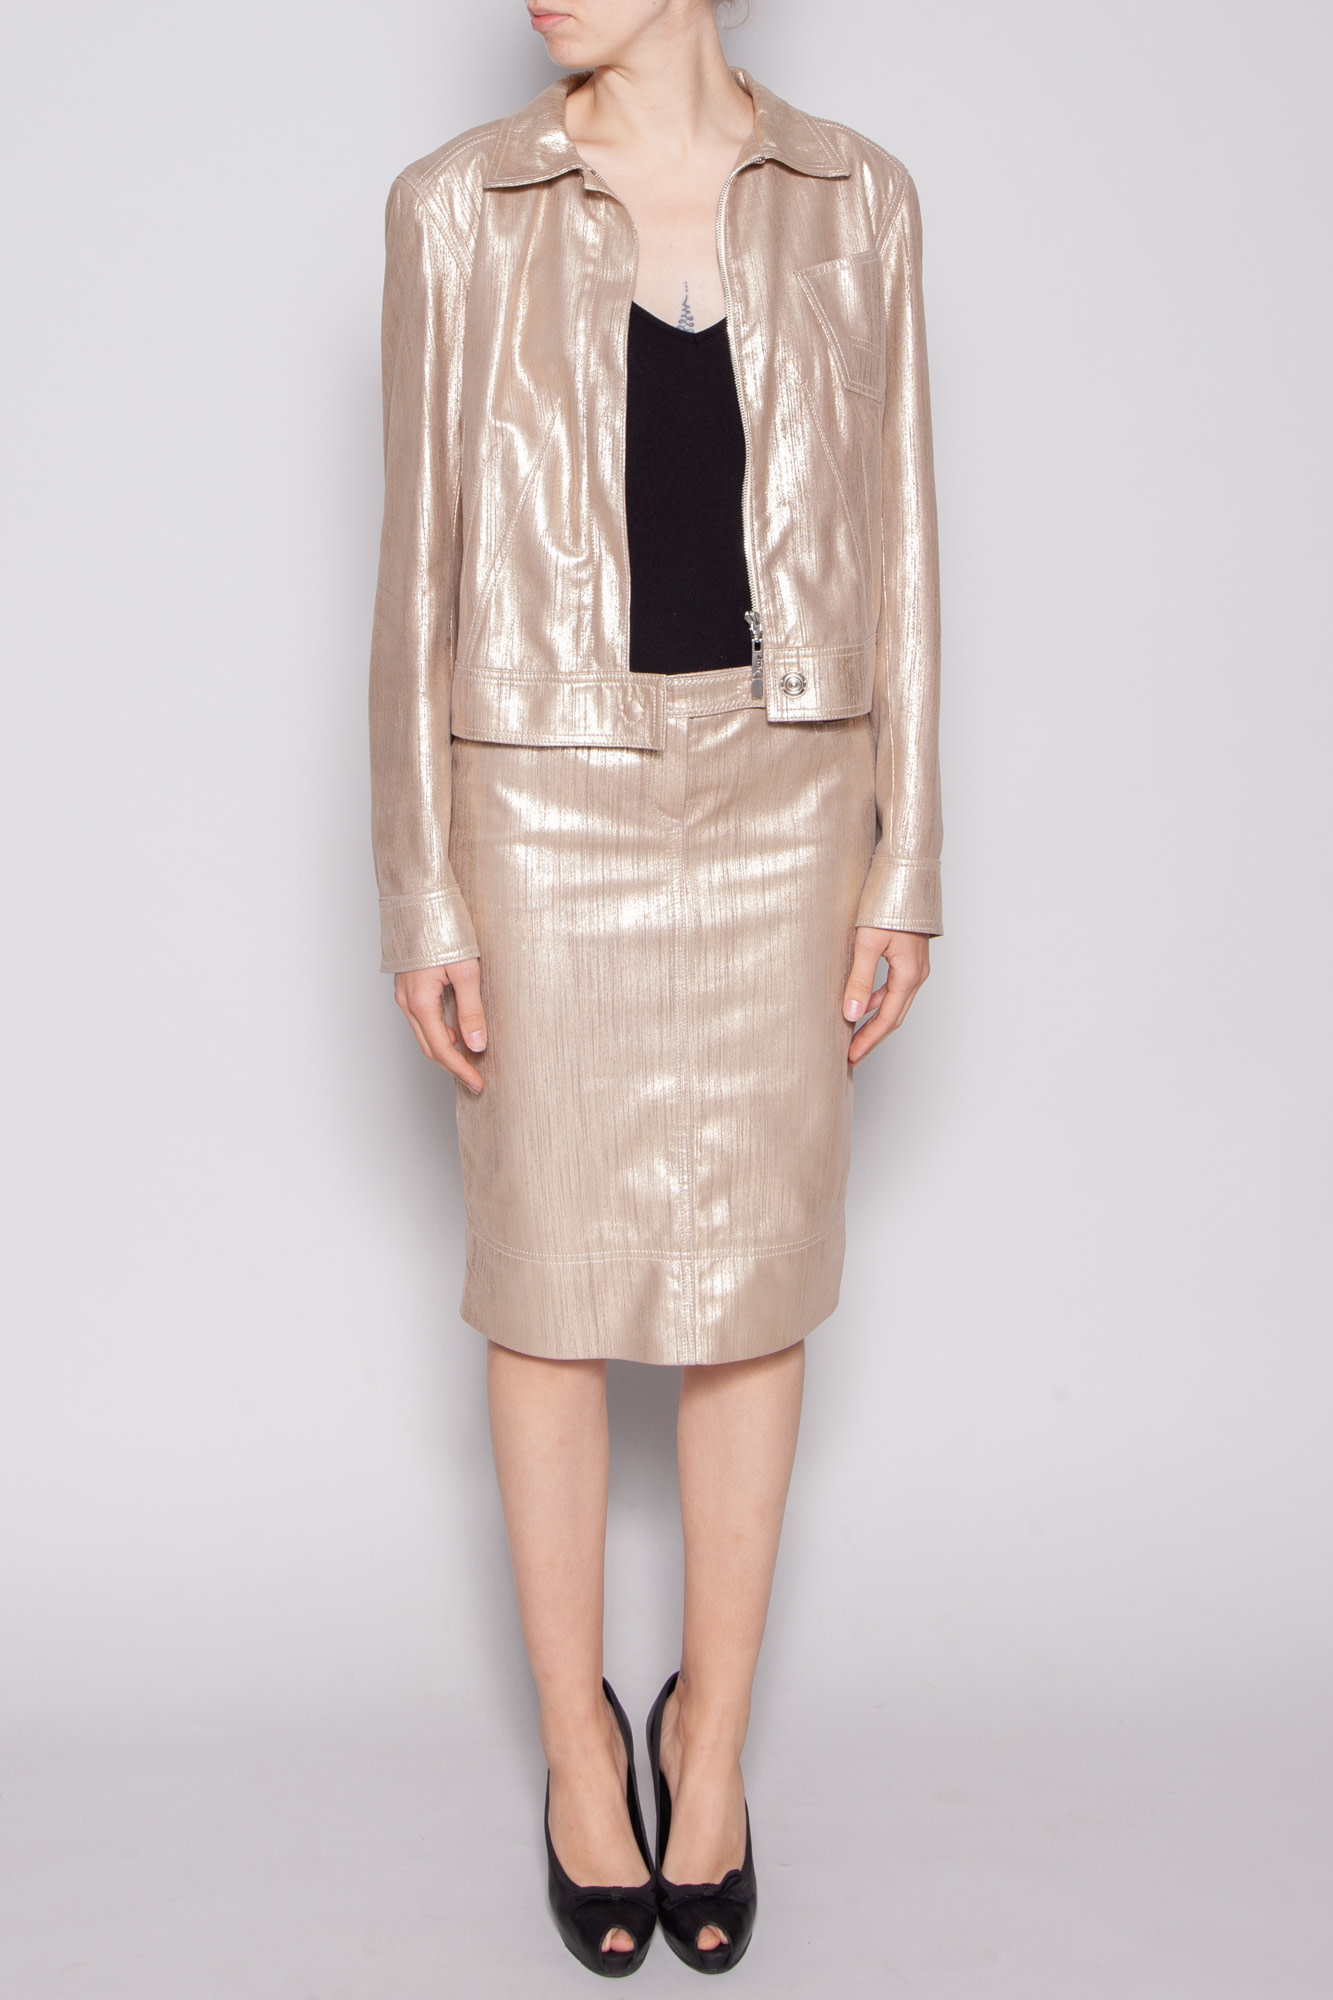 Christian Dior NEW PRICE (WAS $1195) - GOLD LEATHER JACKET